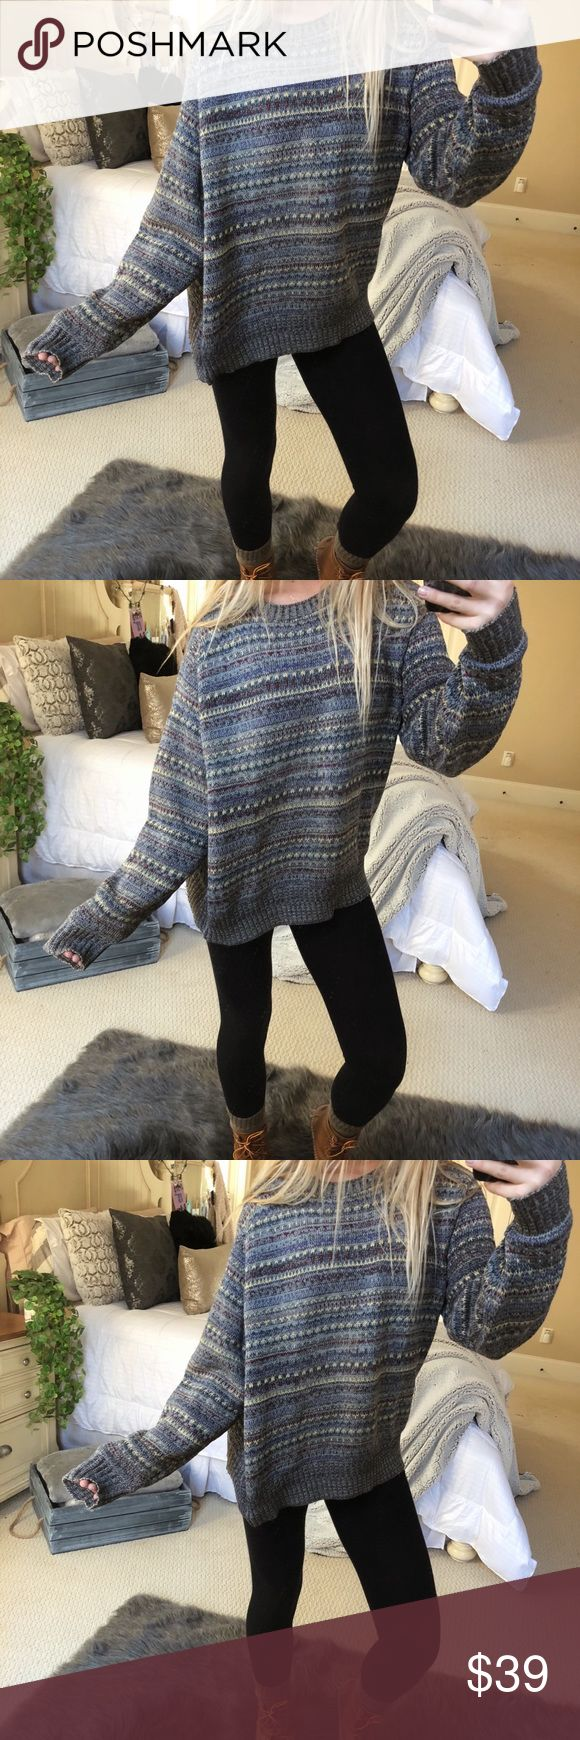 cozy chunky knitted sweater super cute and cozy multicolor chunky knitted sweater. fits a size medium or large 🍃☕️ — * all offers 100% welcomed + encouraged * bundle for a private discount of at least 20% off  * orders guaranteed to ship within 1-2 days unless stated otherwise * ask me any questions if you ever have any! xo Sweaters